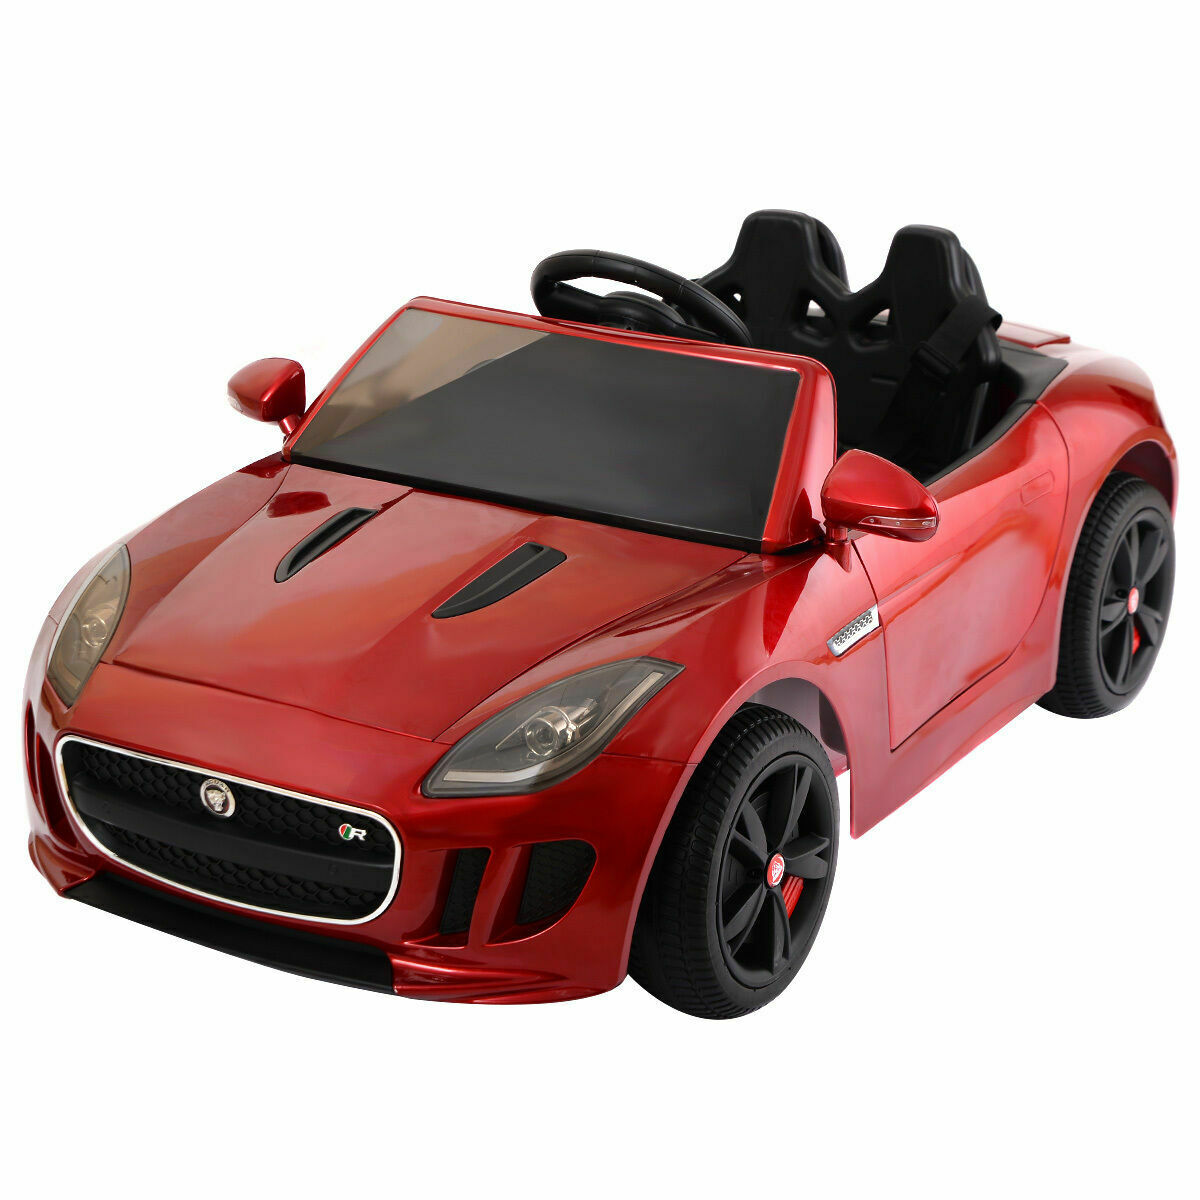 Jaguar F-TYPE 12V Licensed Battery Battery Battery Power Kids Ride On Car MP3 RC Remote Control 2e43b8